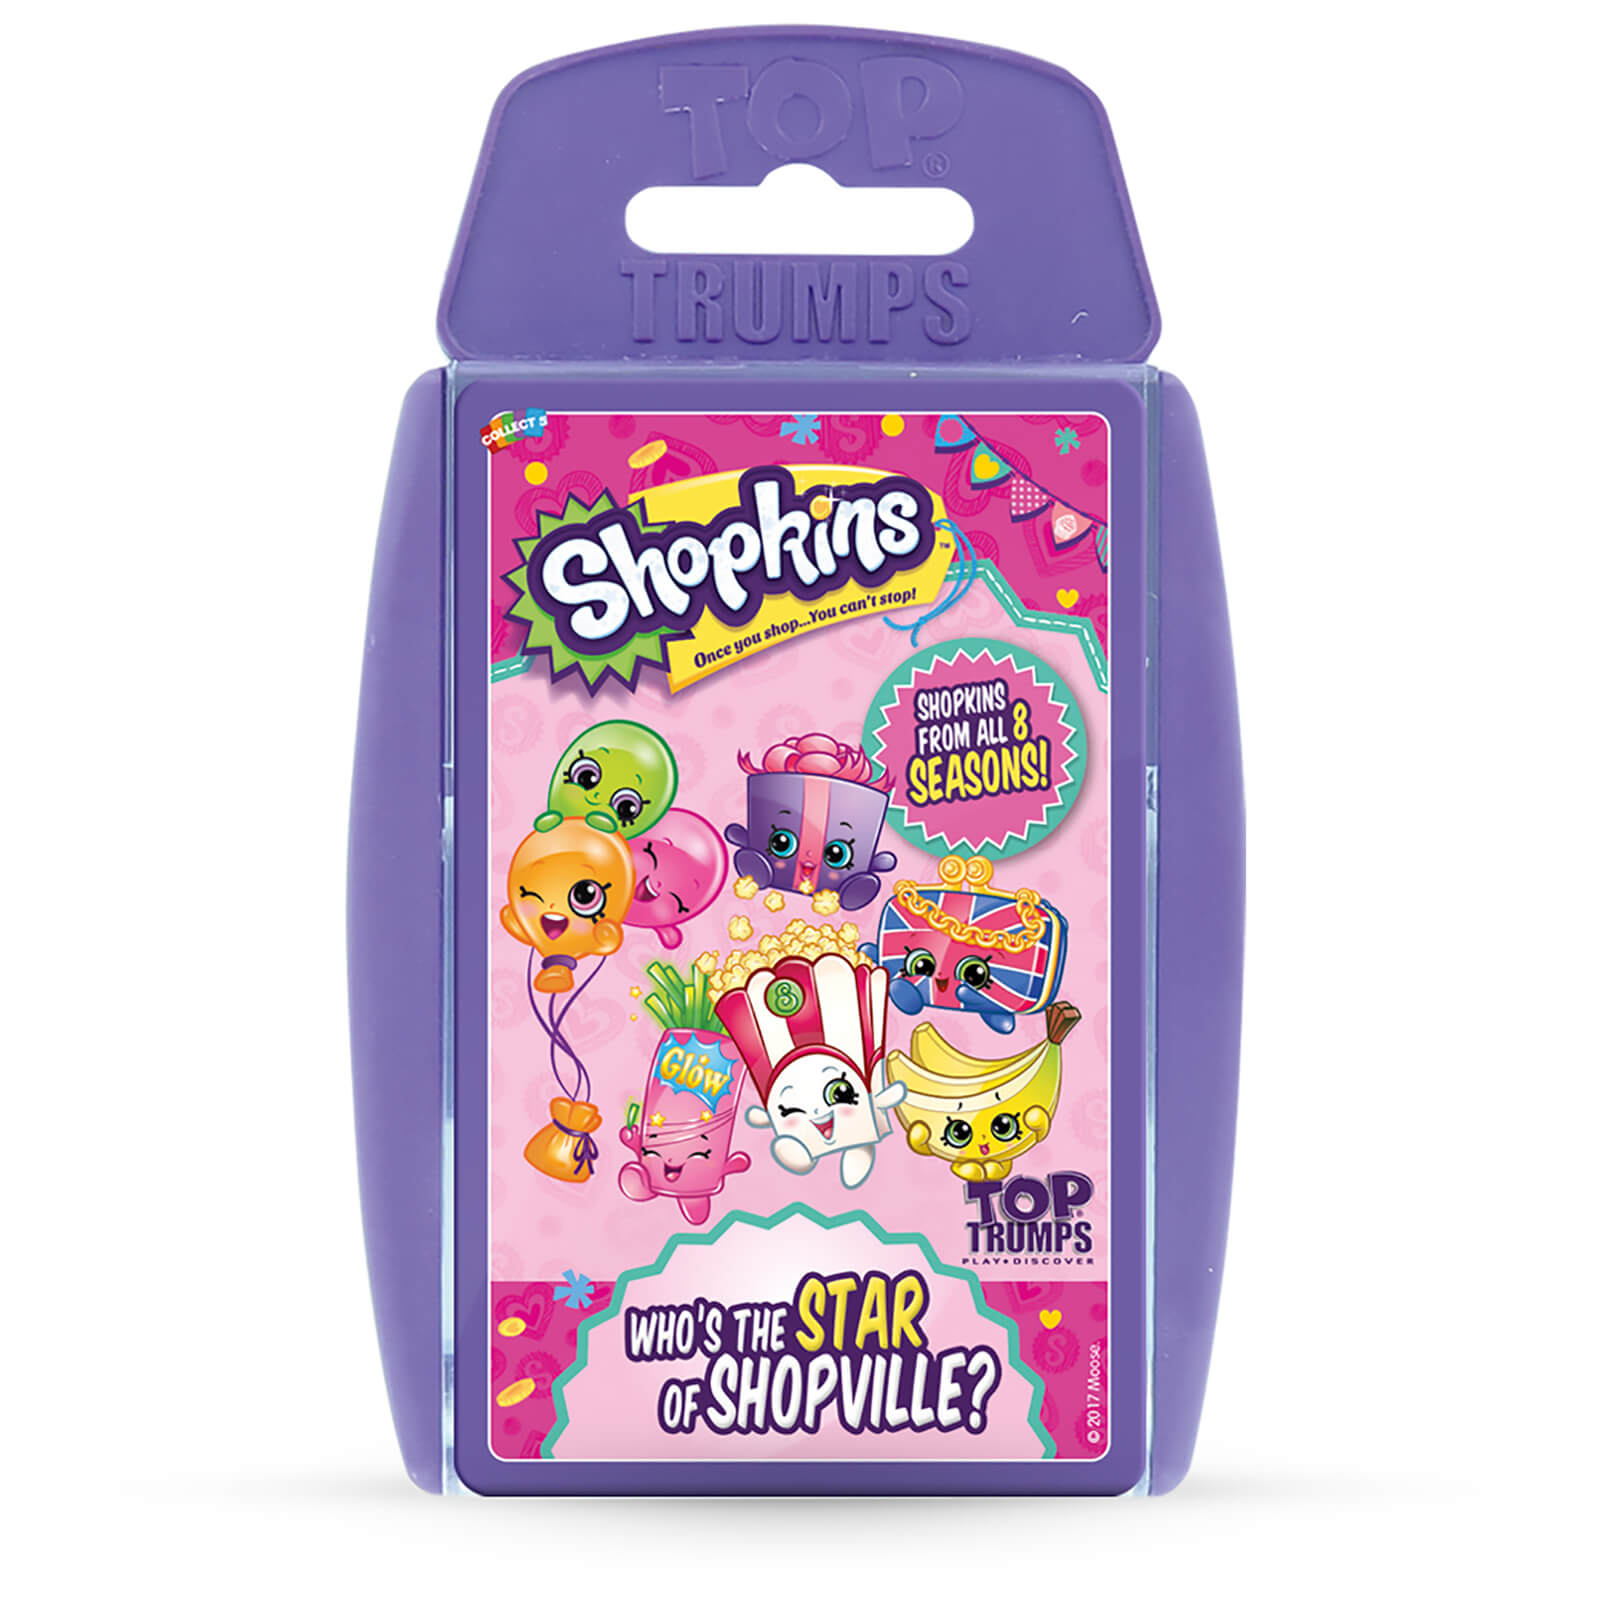 Image of Top Trumps Card Game - Shopkins Edition Volume 2